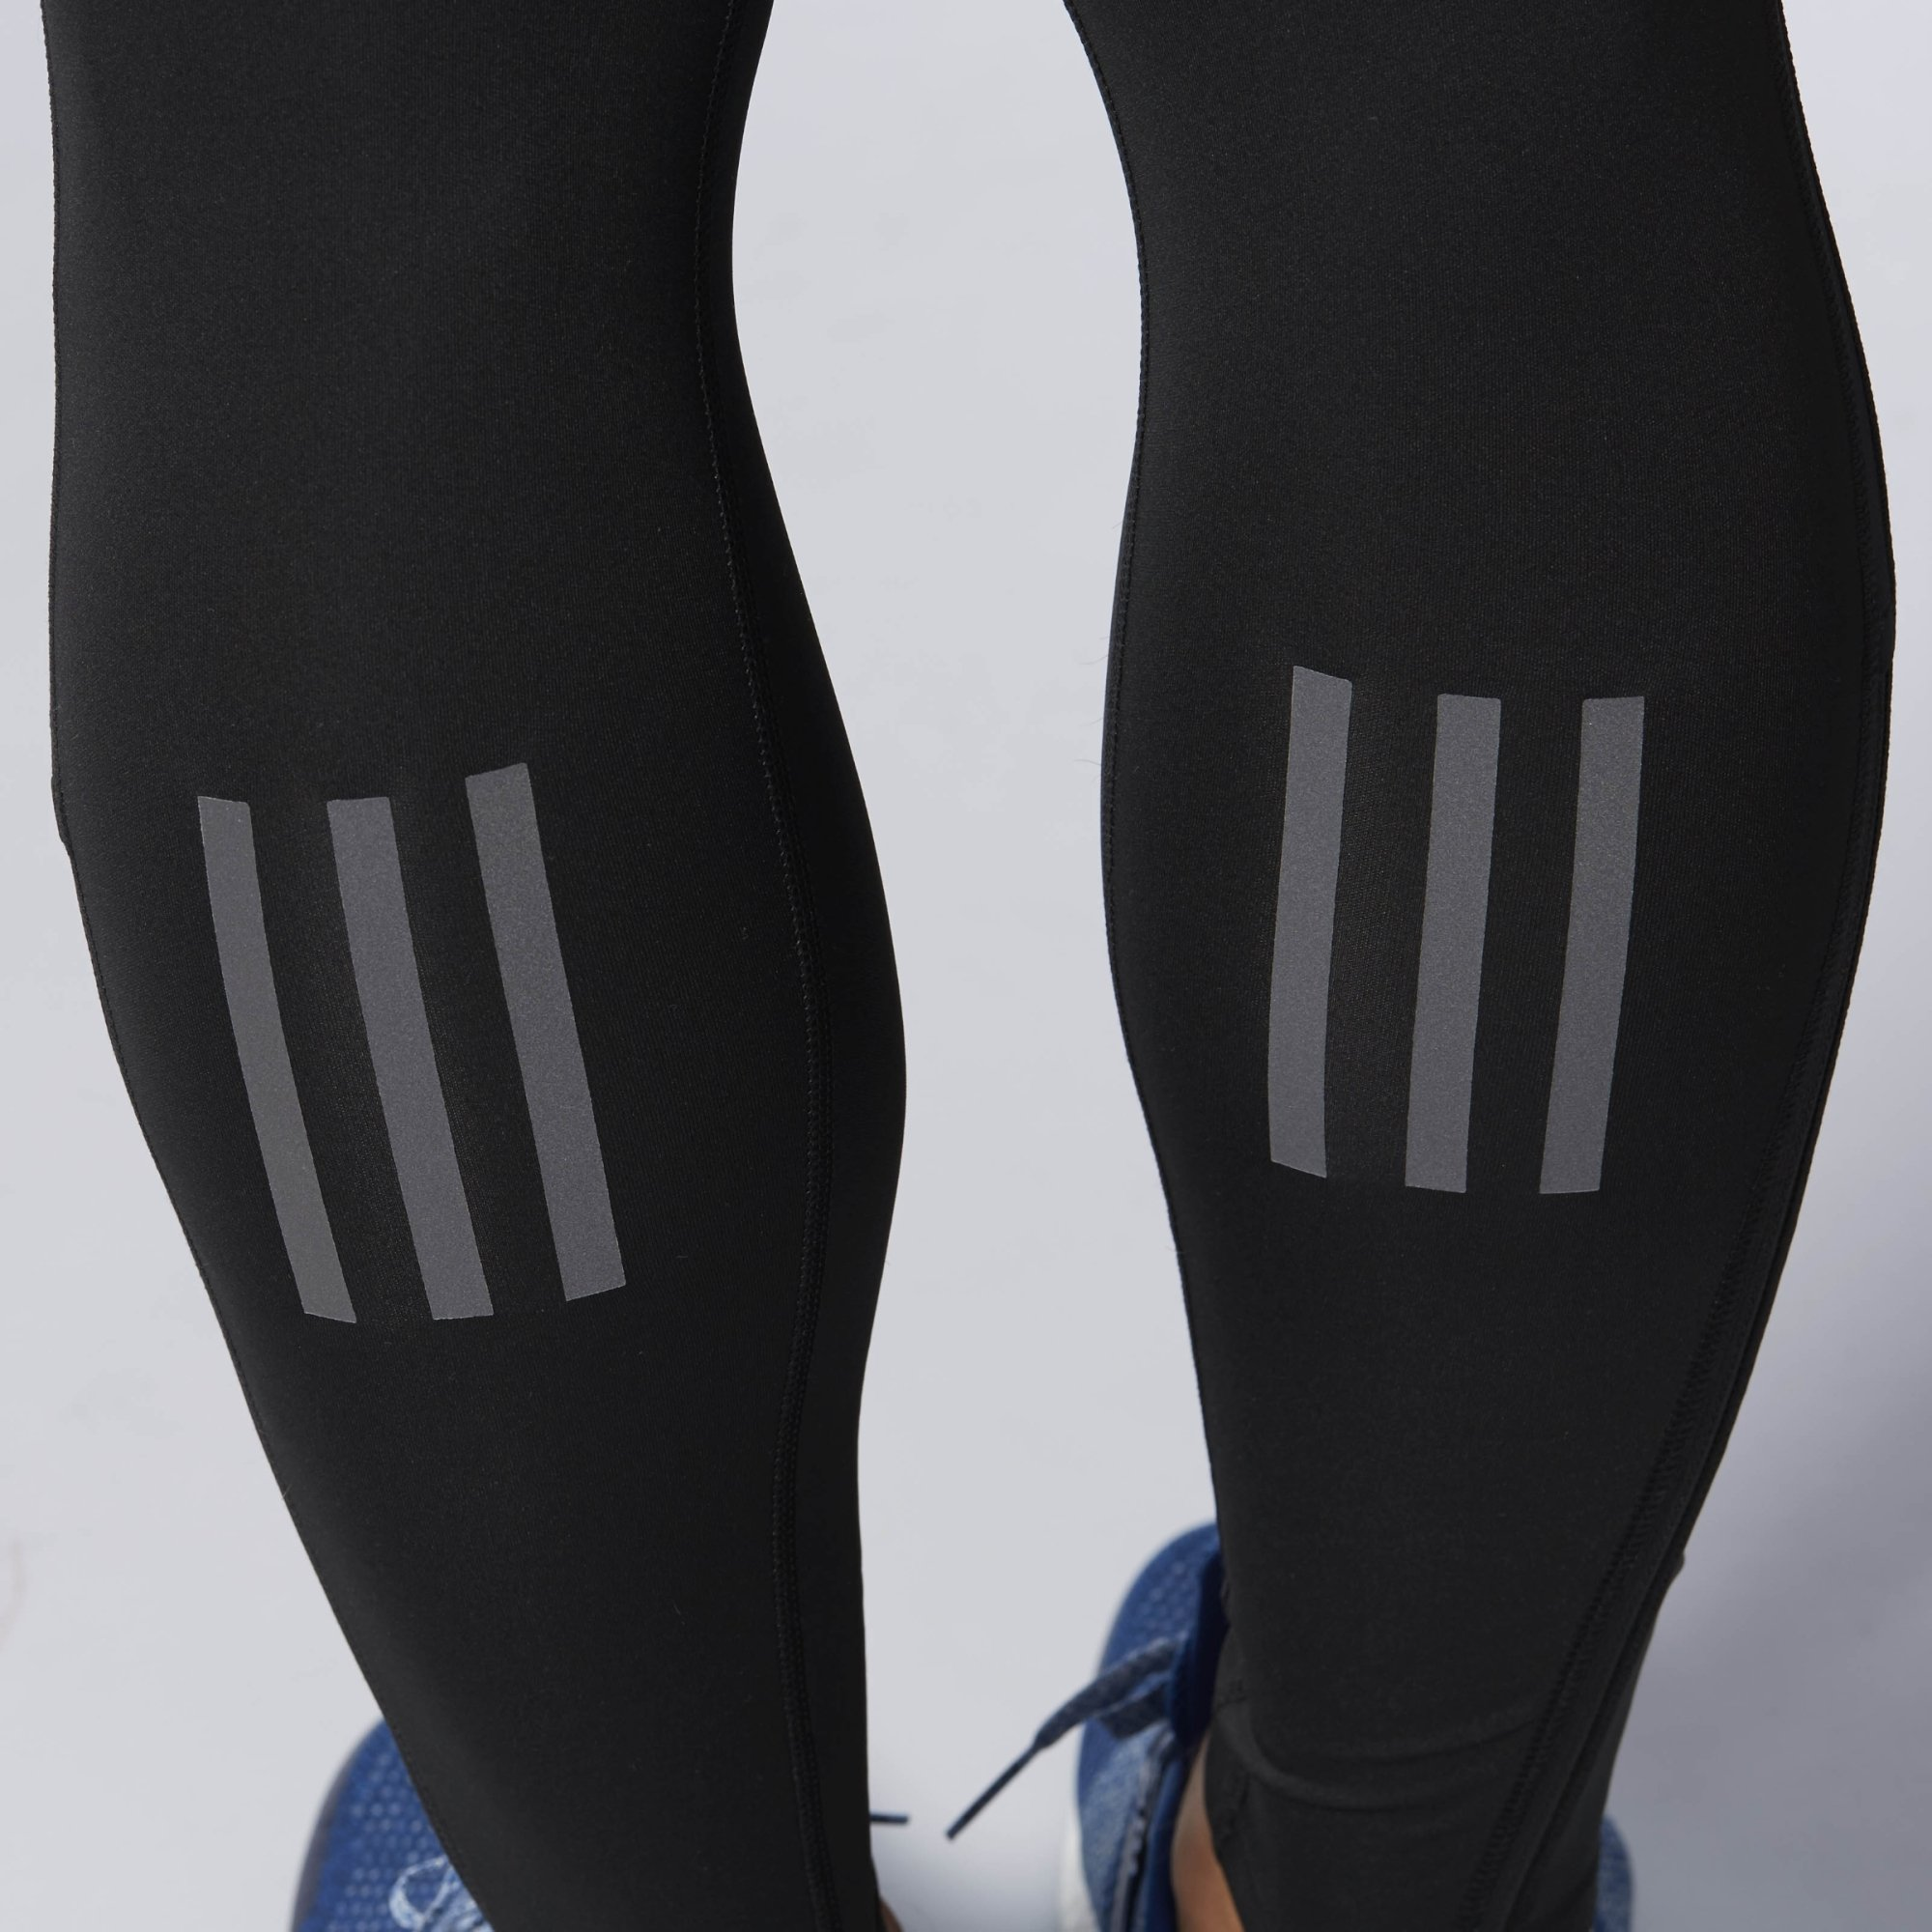 adidas Men's Running Response Long Tights, Black, Large by adidas (Image #4)